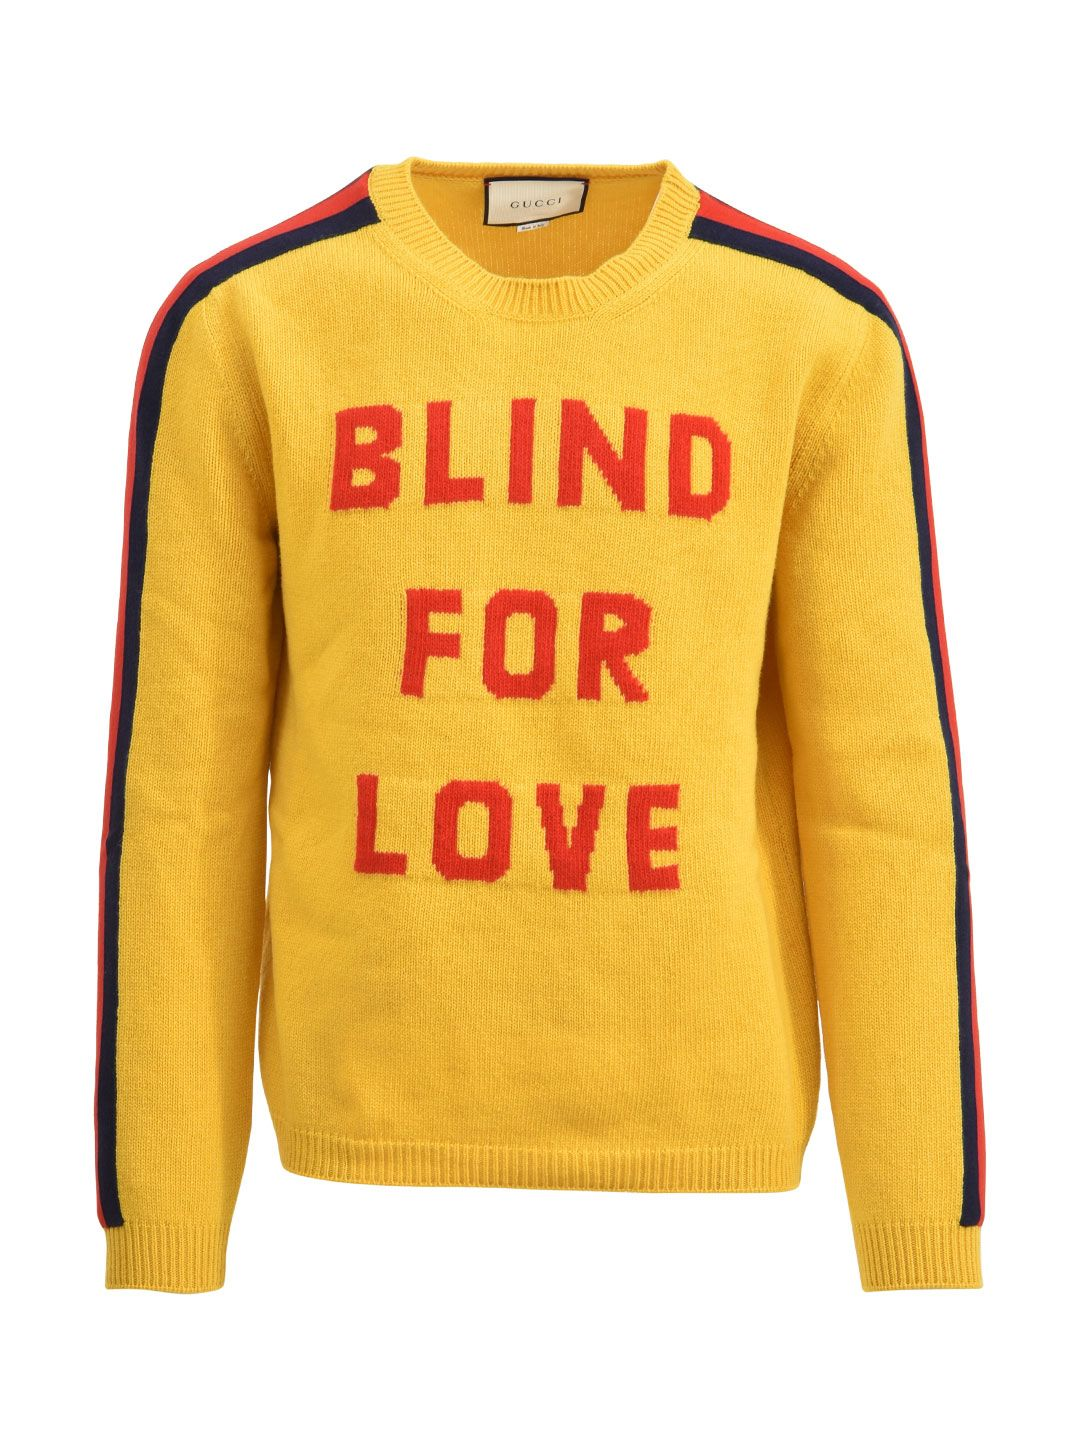 Gucci Blind For Love Sweater 10508677